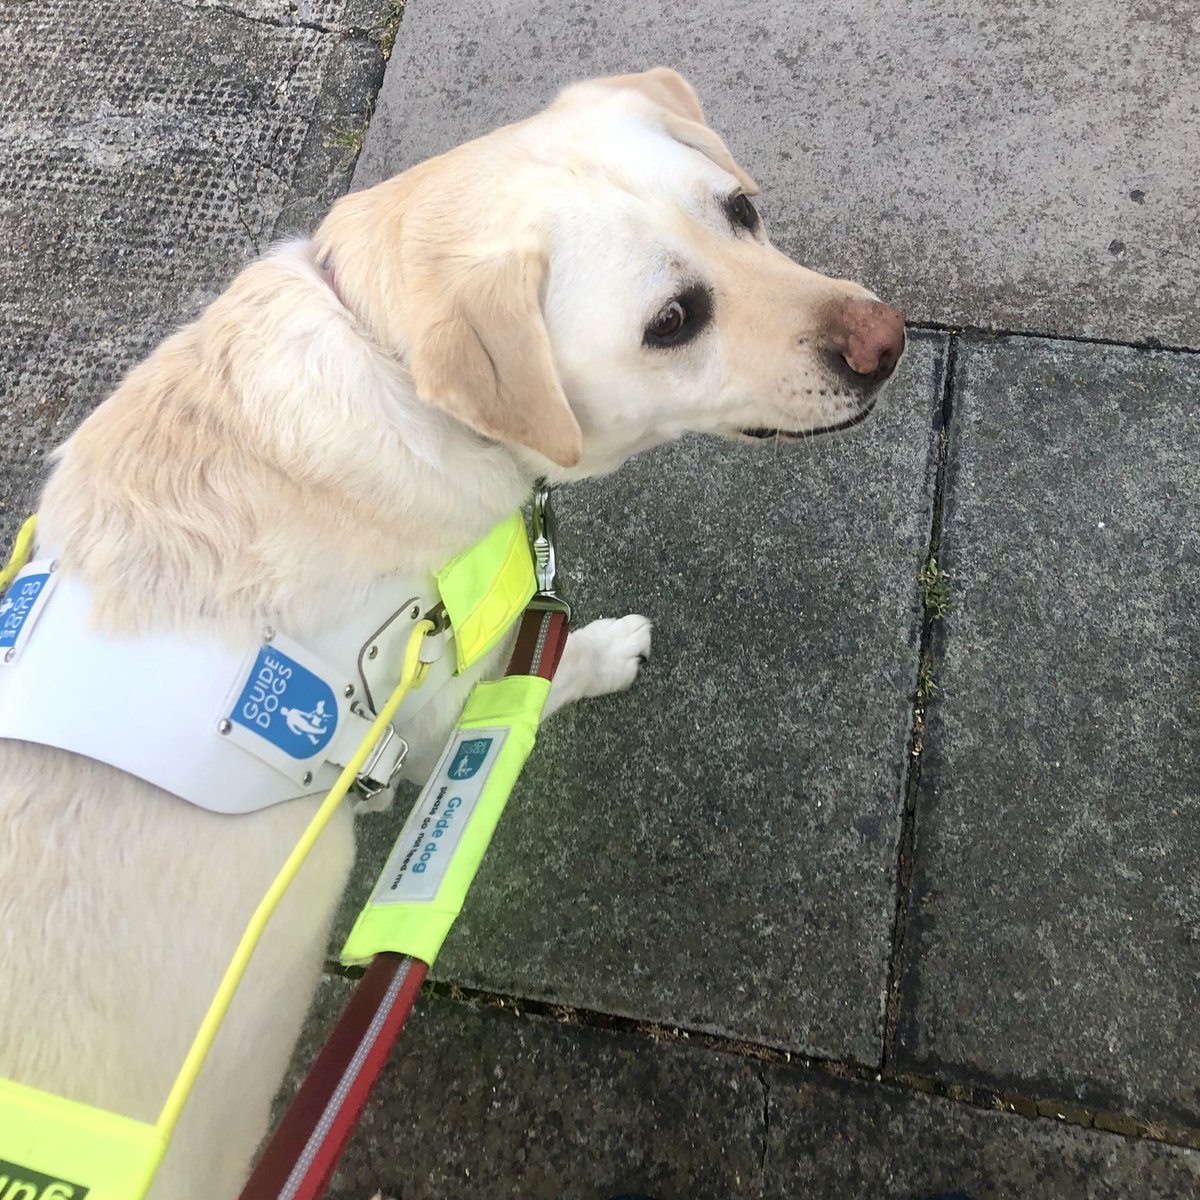 I'm very sad to say that I've decided not to take @Kika_GuideDog out alone anymore. In the last week so many people haven't bothered moving & instead brush past me. The pavements are now too busy for us to maintain social distancing. One step back for independence. #COVID__19